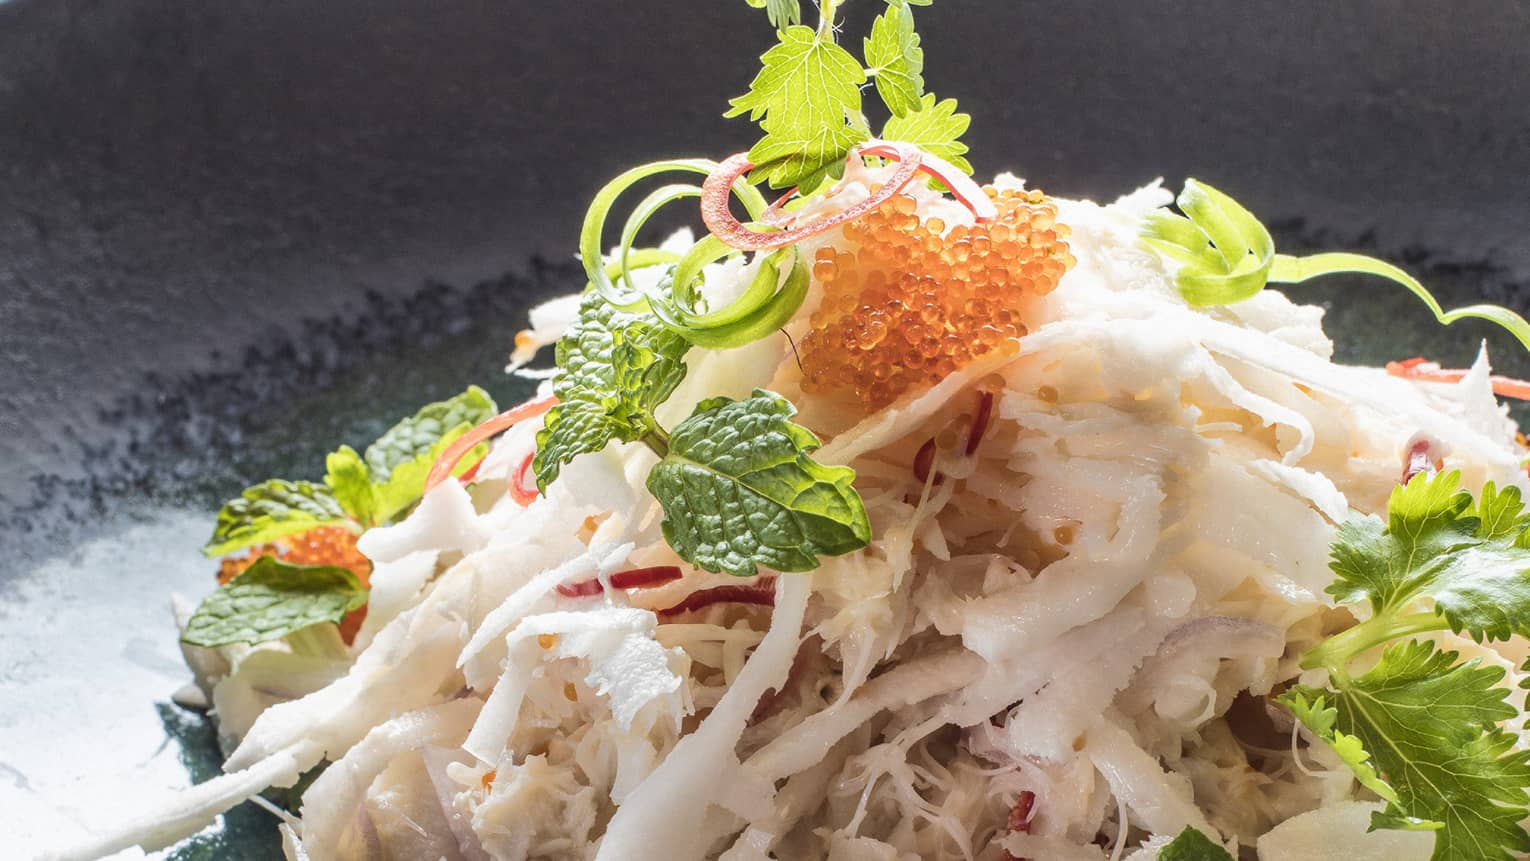 Sundara crab with Asian herbs, grated coconut and lime palm sugar dressing